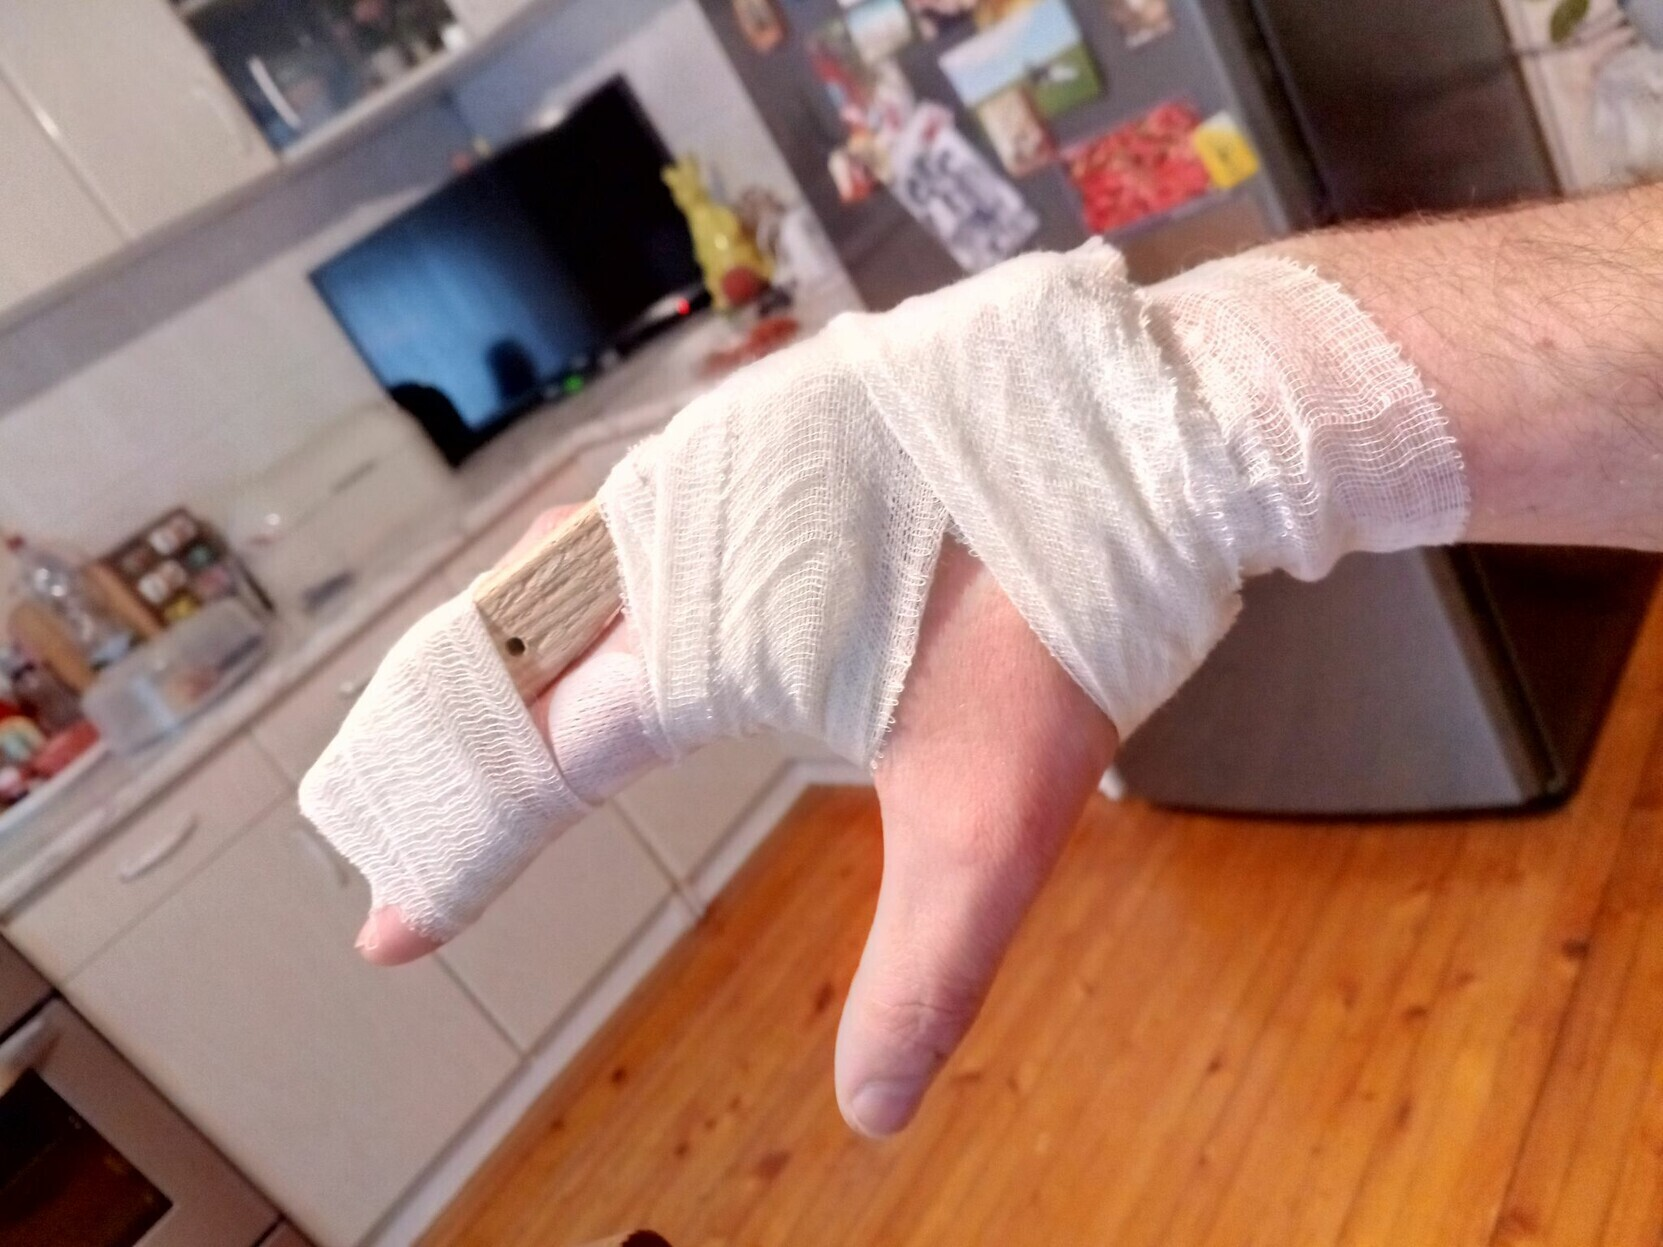 Finished splint, now mostly hidden under the bandage holding to finger and hand. There's a gap where the bandaid is covering the wound to avoid pressure on that area.